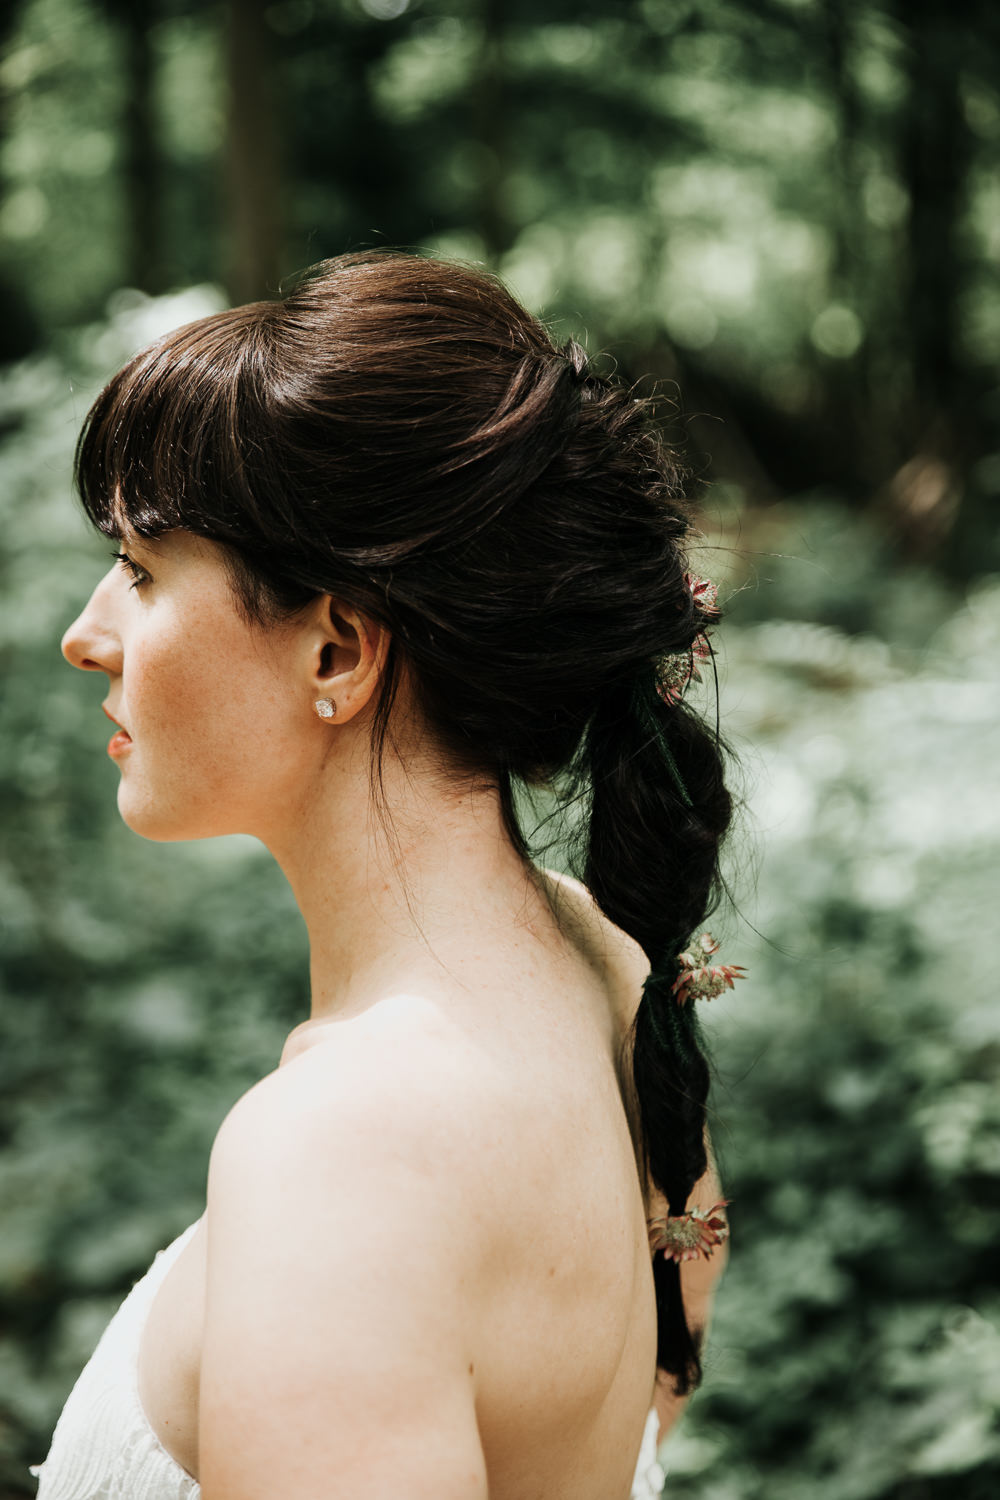 Micro Wedding Ideas Gareth J Photography Bride Bridal Hair Style Up Do Pony Tail